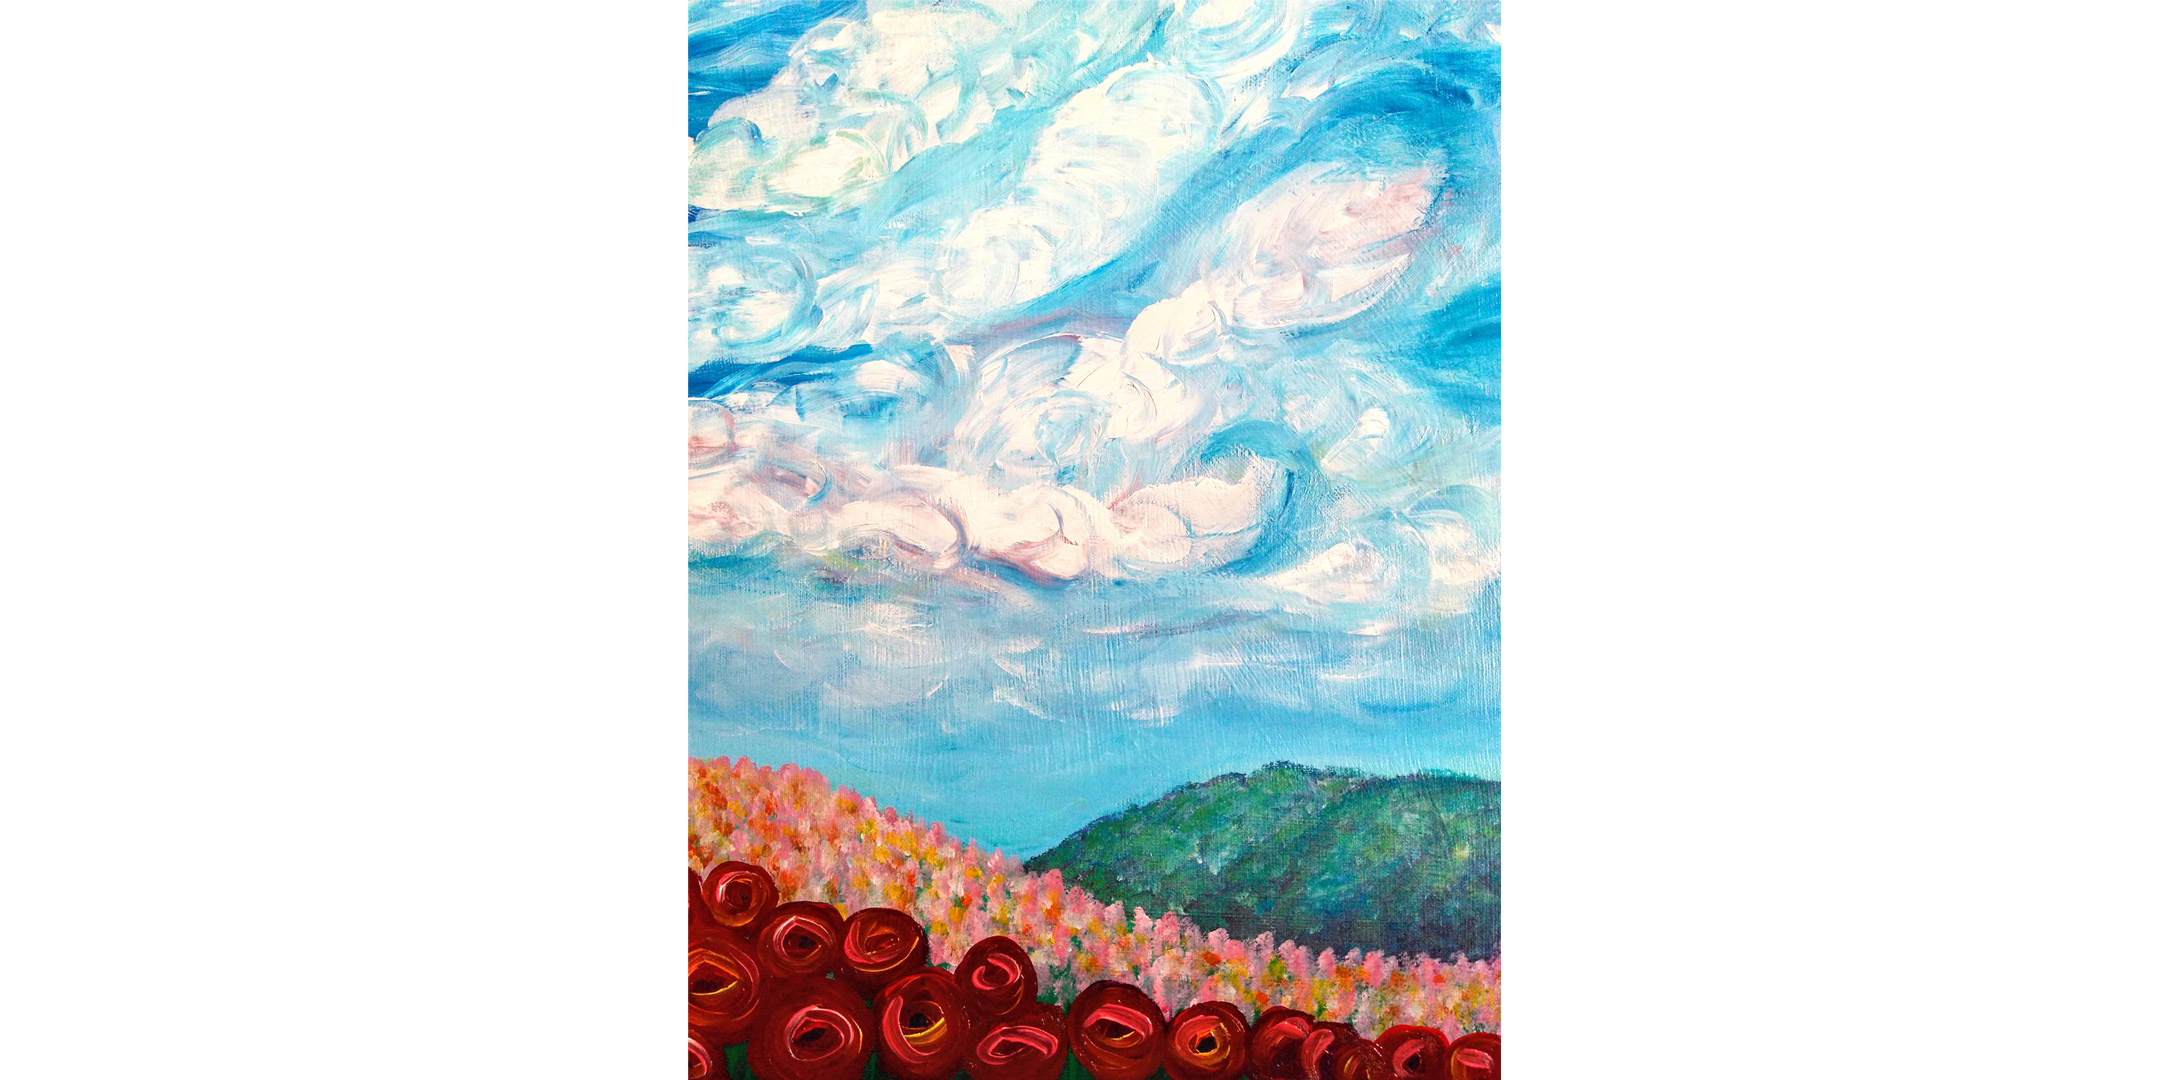 July 24th 1pm Sip and Paint